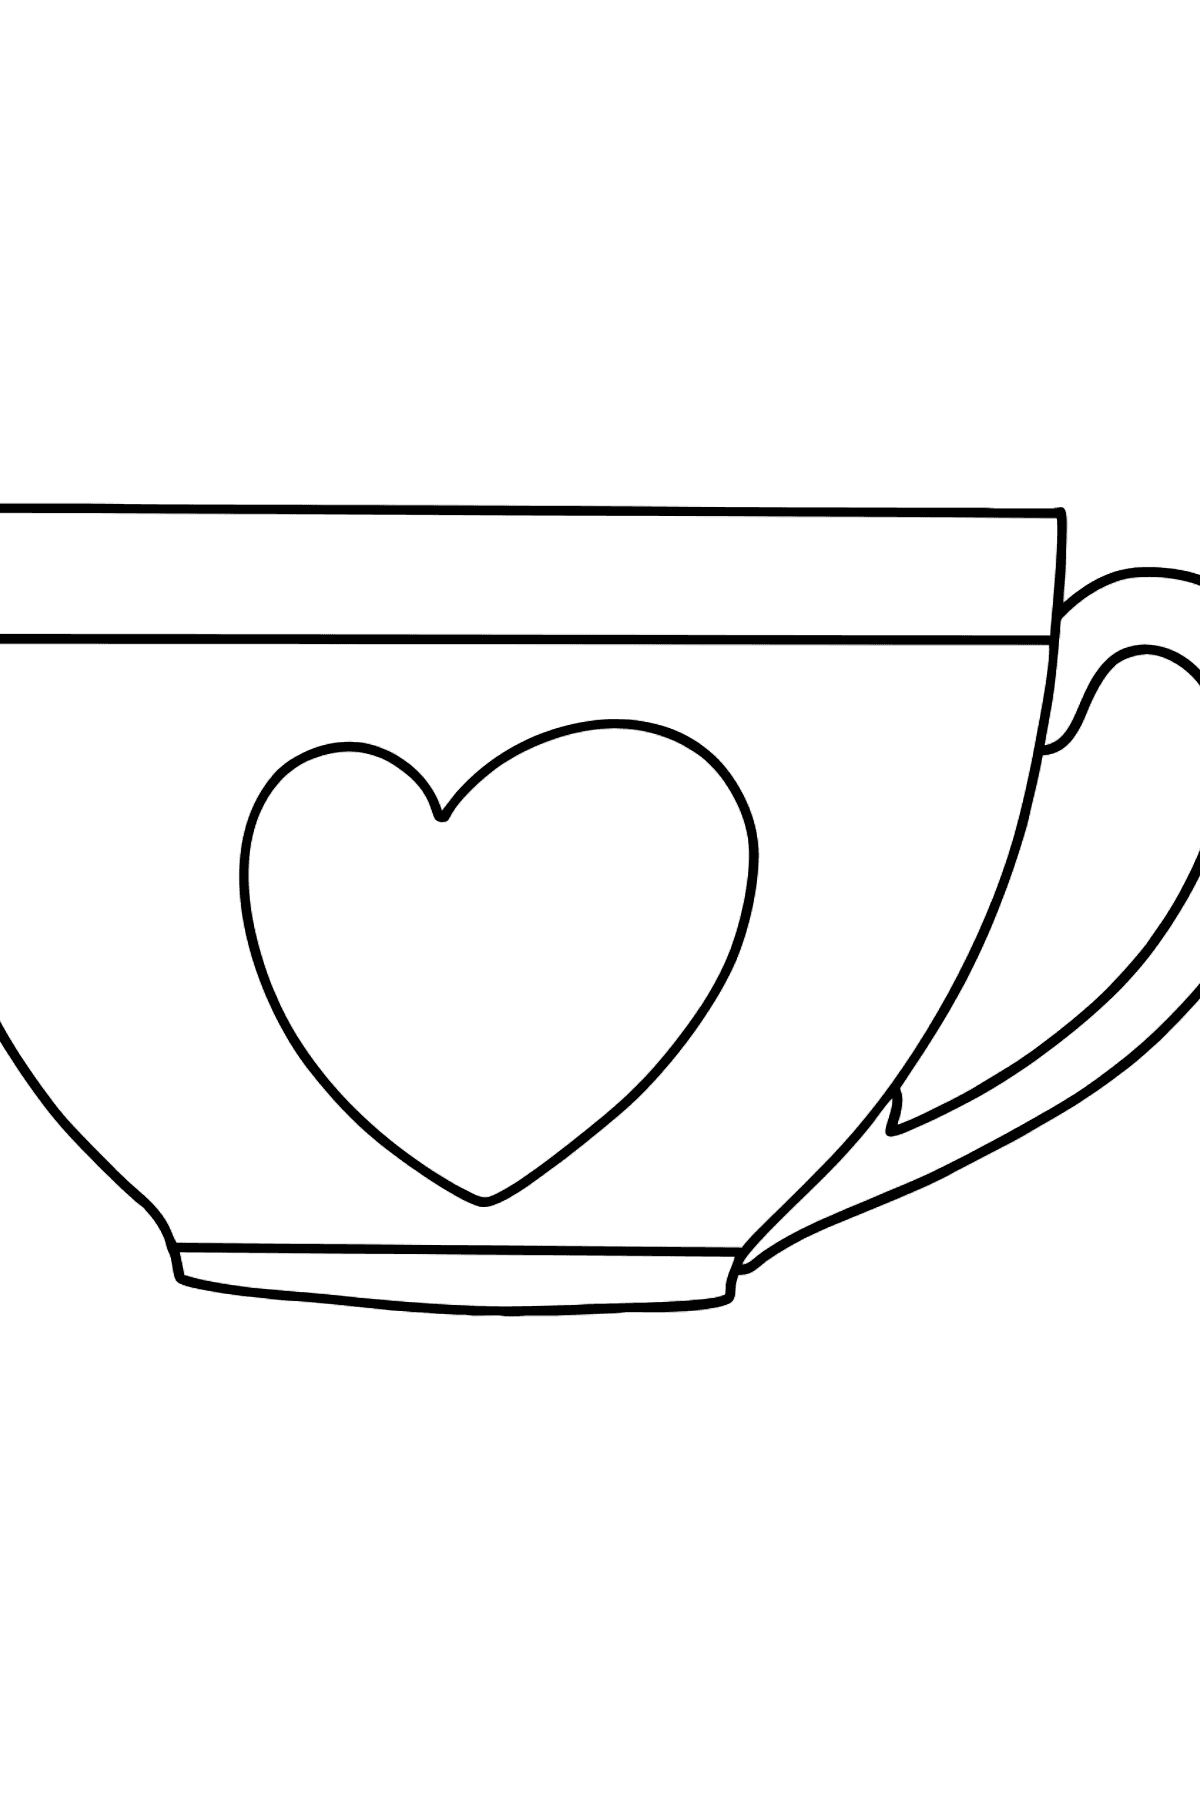 Cup coloring page - Coloring Pages for Kids